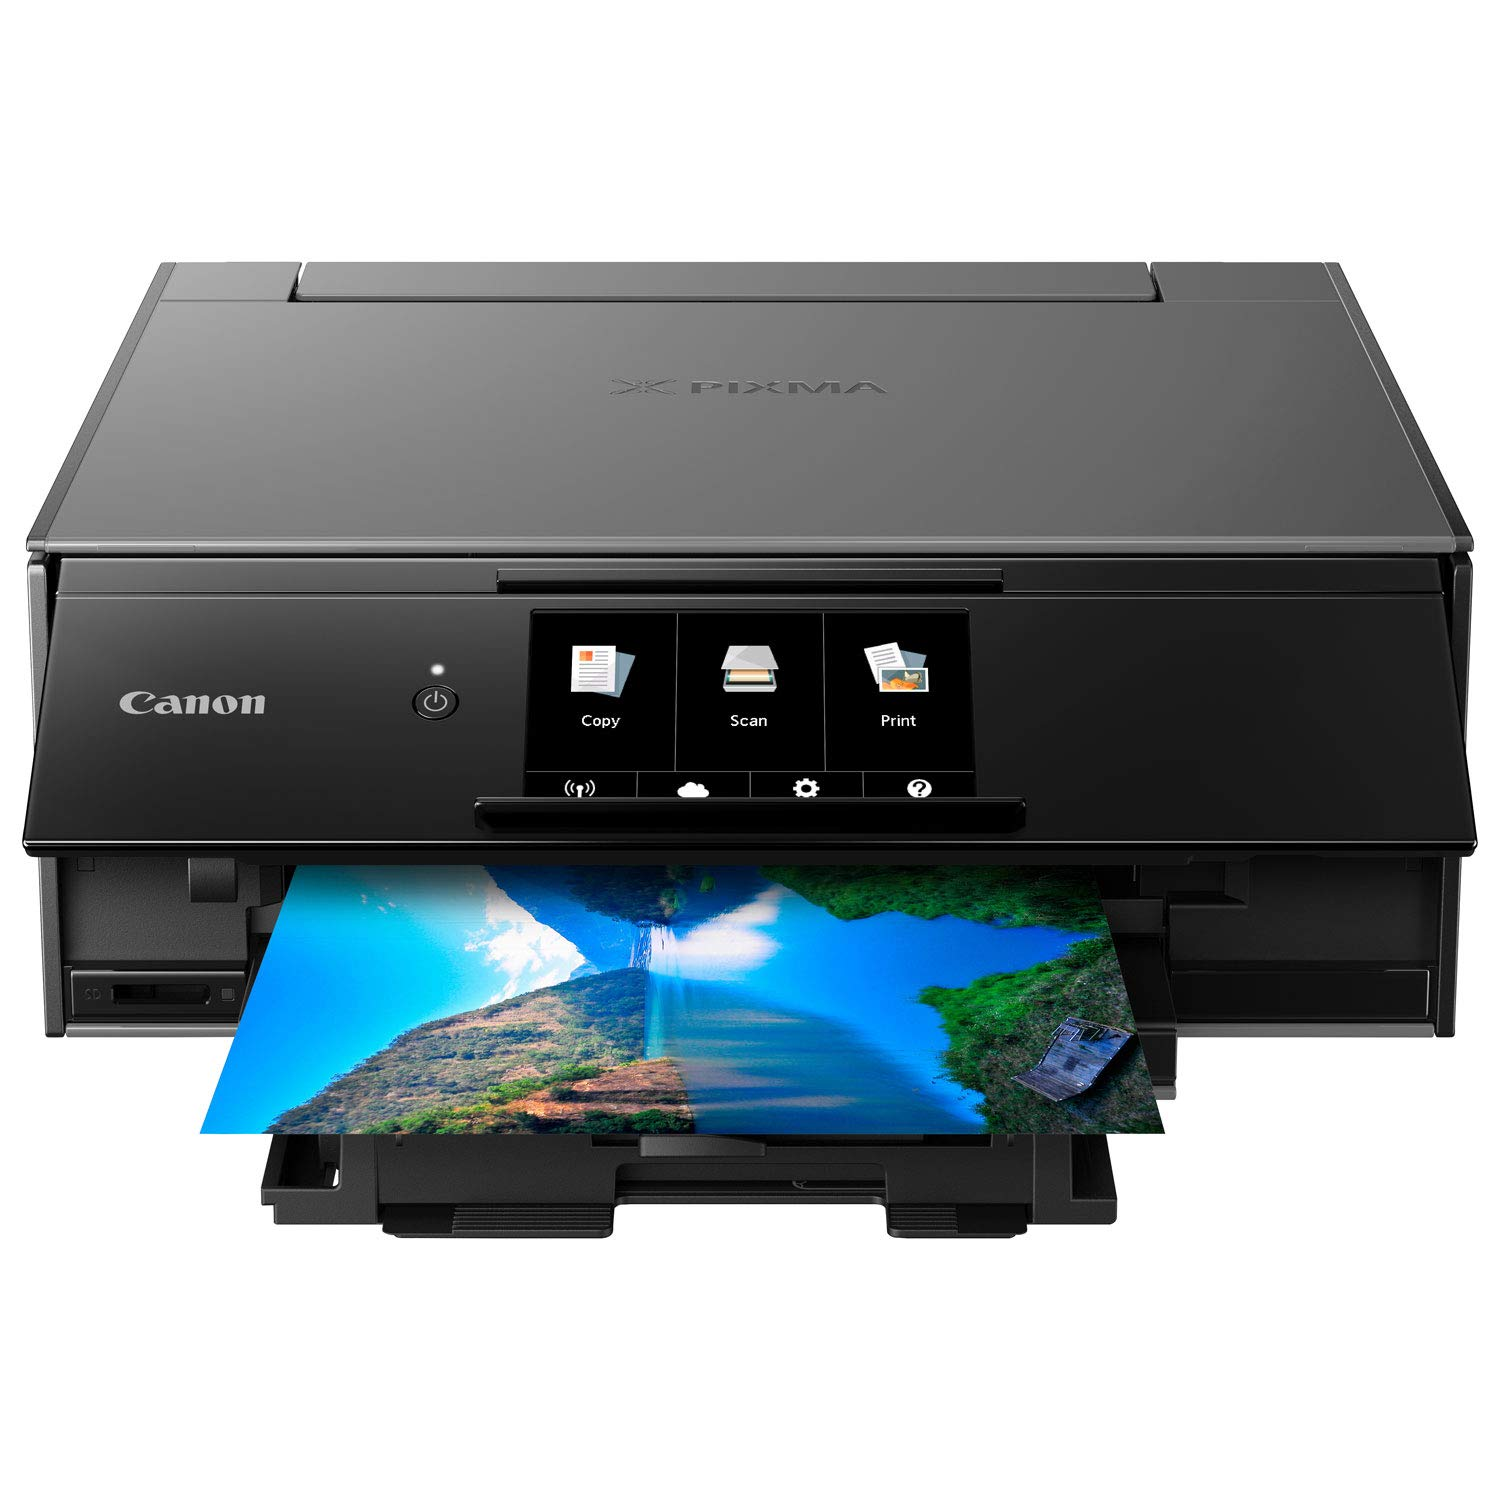 Canon Office and Business Wireless All in one Printer with Bluetooth, Wi-Fi, air Print and Google Cloud Print Compatible Mobile Tablet with Scanner, Copier and CD Printer with Set of Ink by Canon (Image #2)